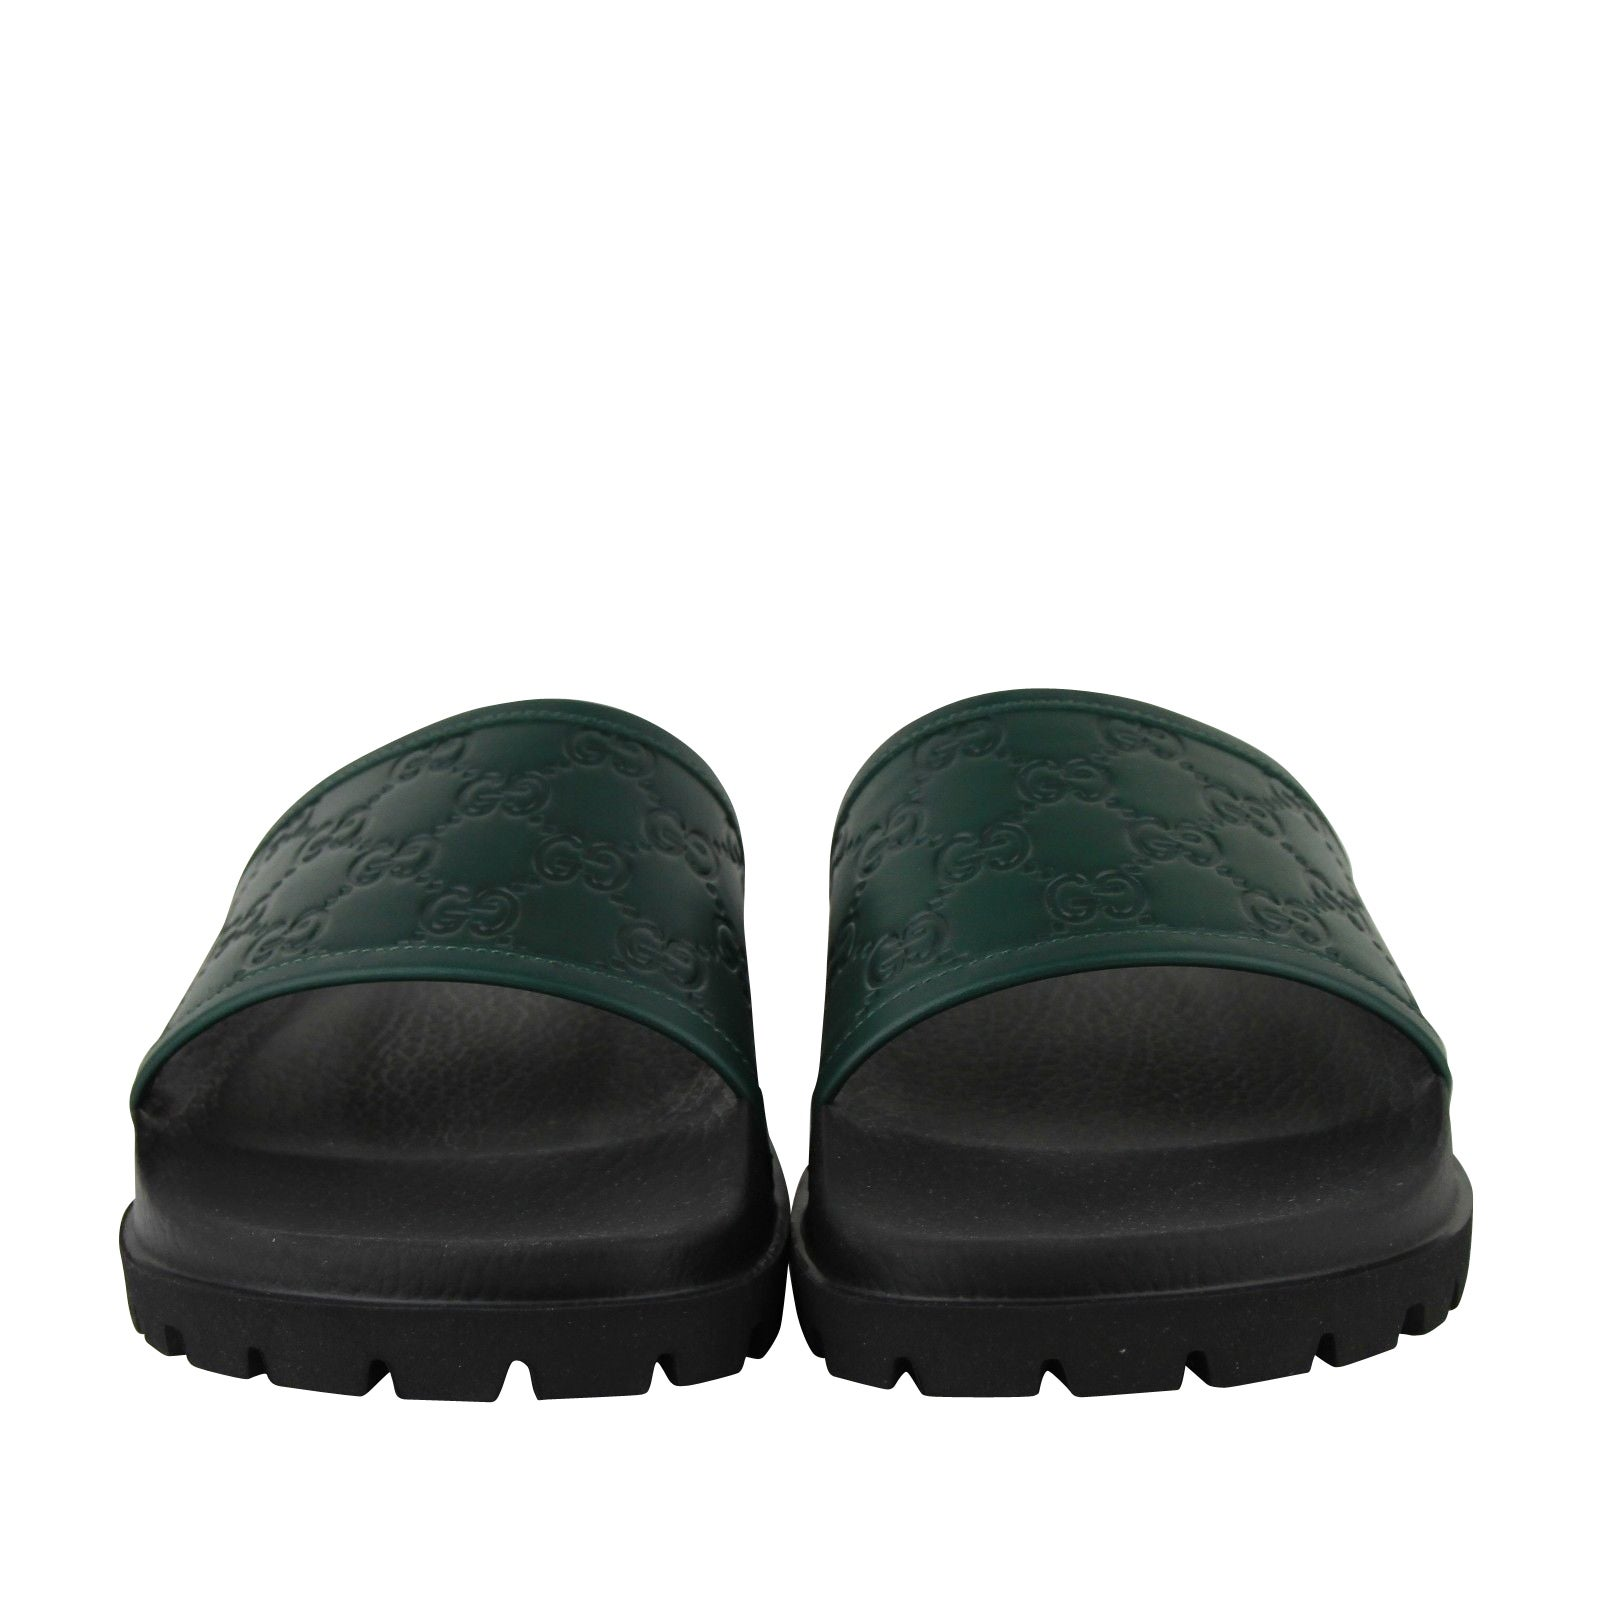 b97d92061 Shop Gucci Guccissima Pattern Green / Black Leather Sandals 431070 3020 - Free  Shipping Today - Overstock - 28031687